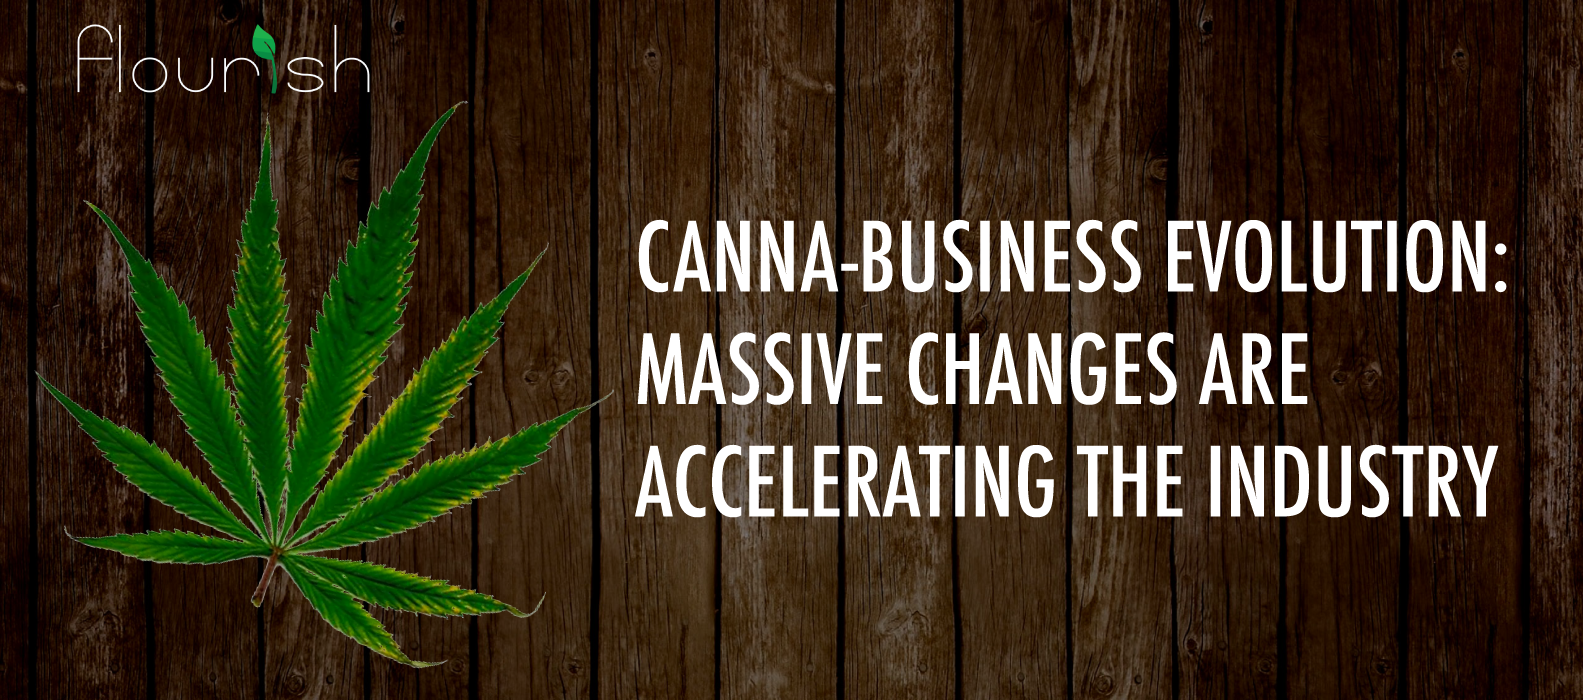 canna-business evolution